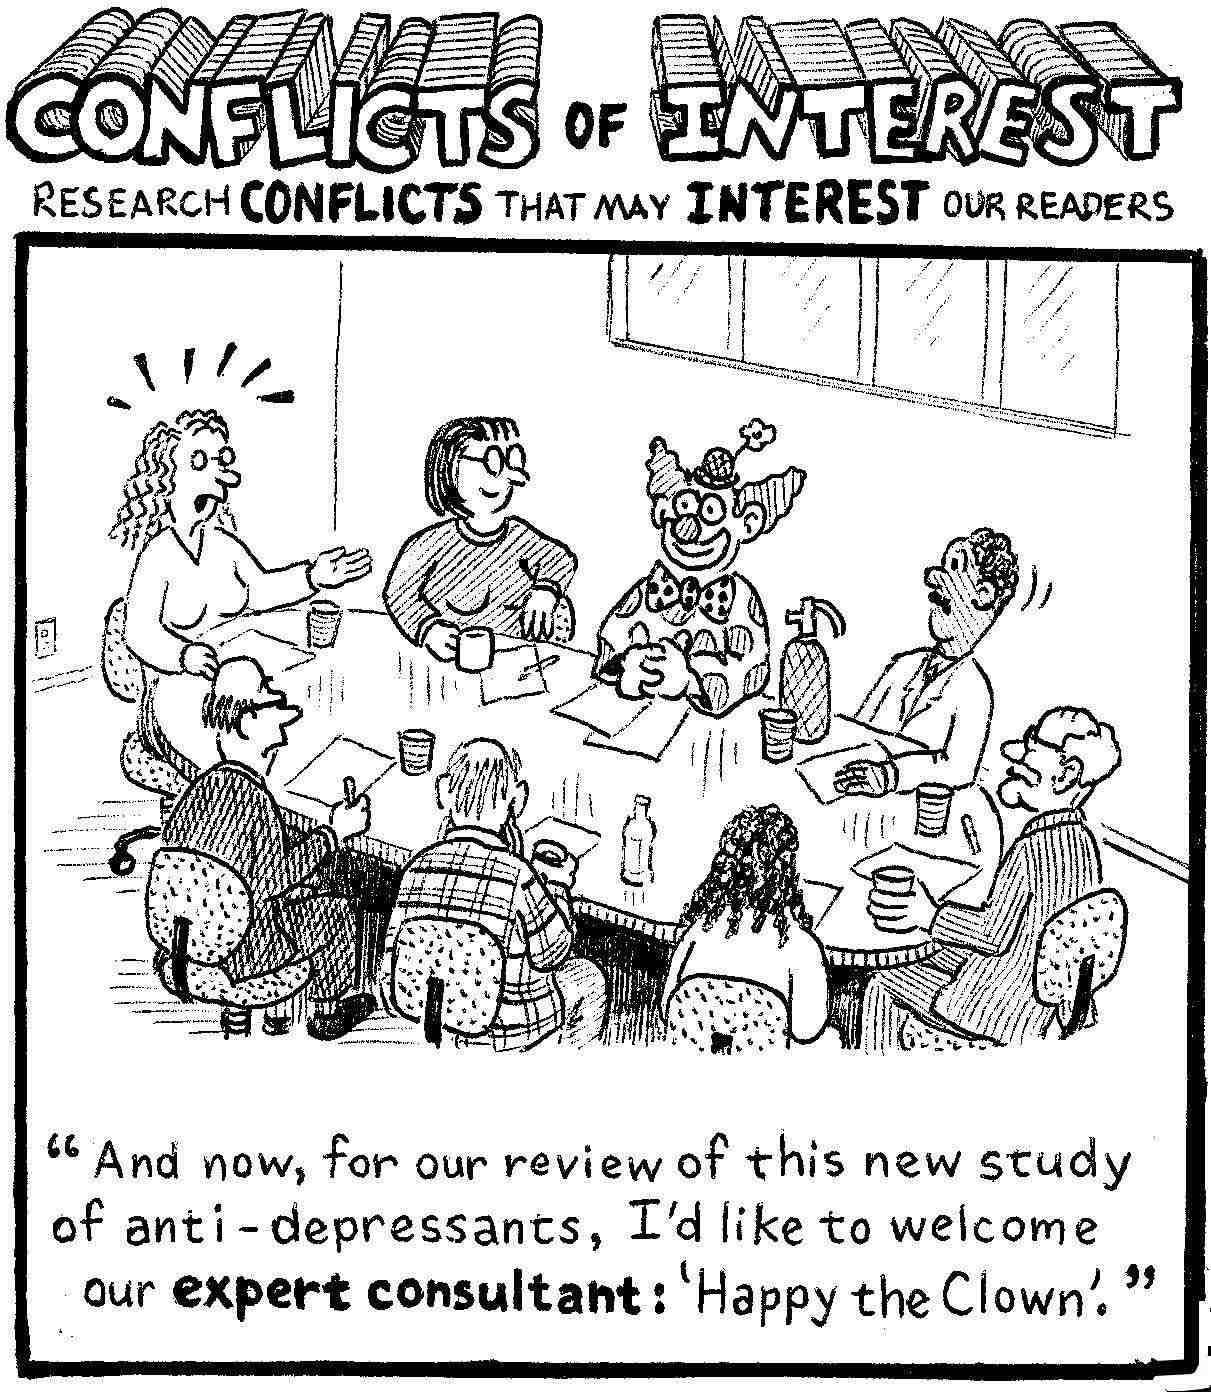 A funny cartoon about a clown advisor, during the review by a research ethics committee